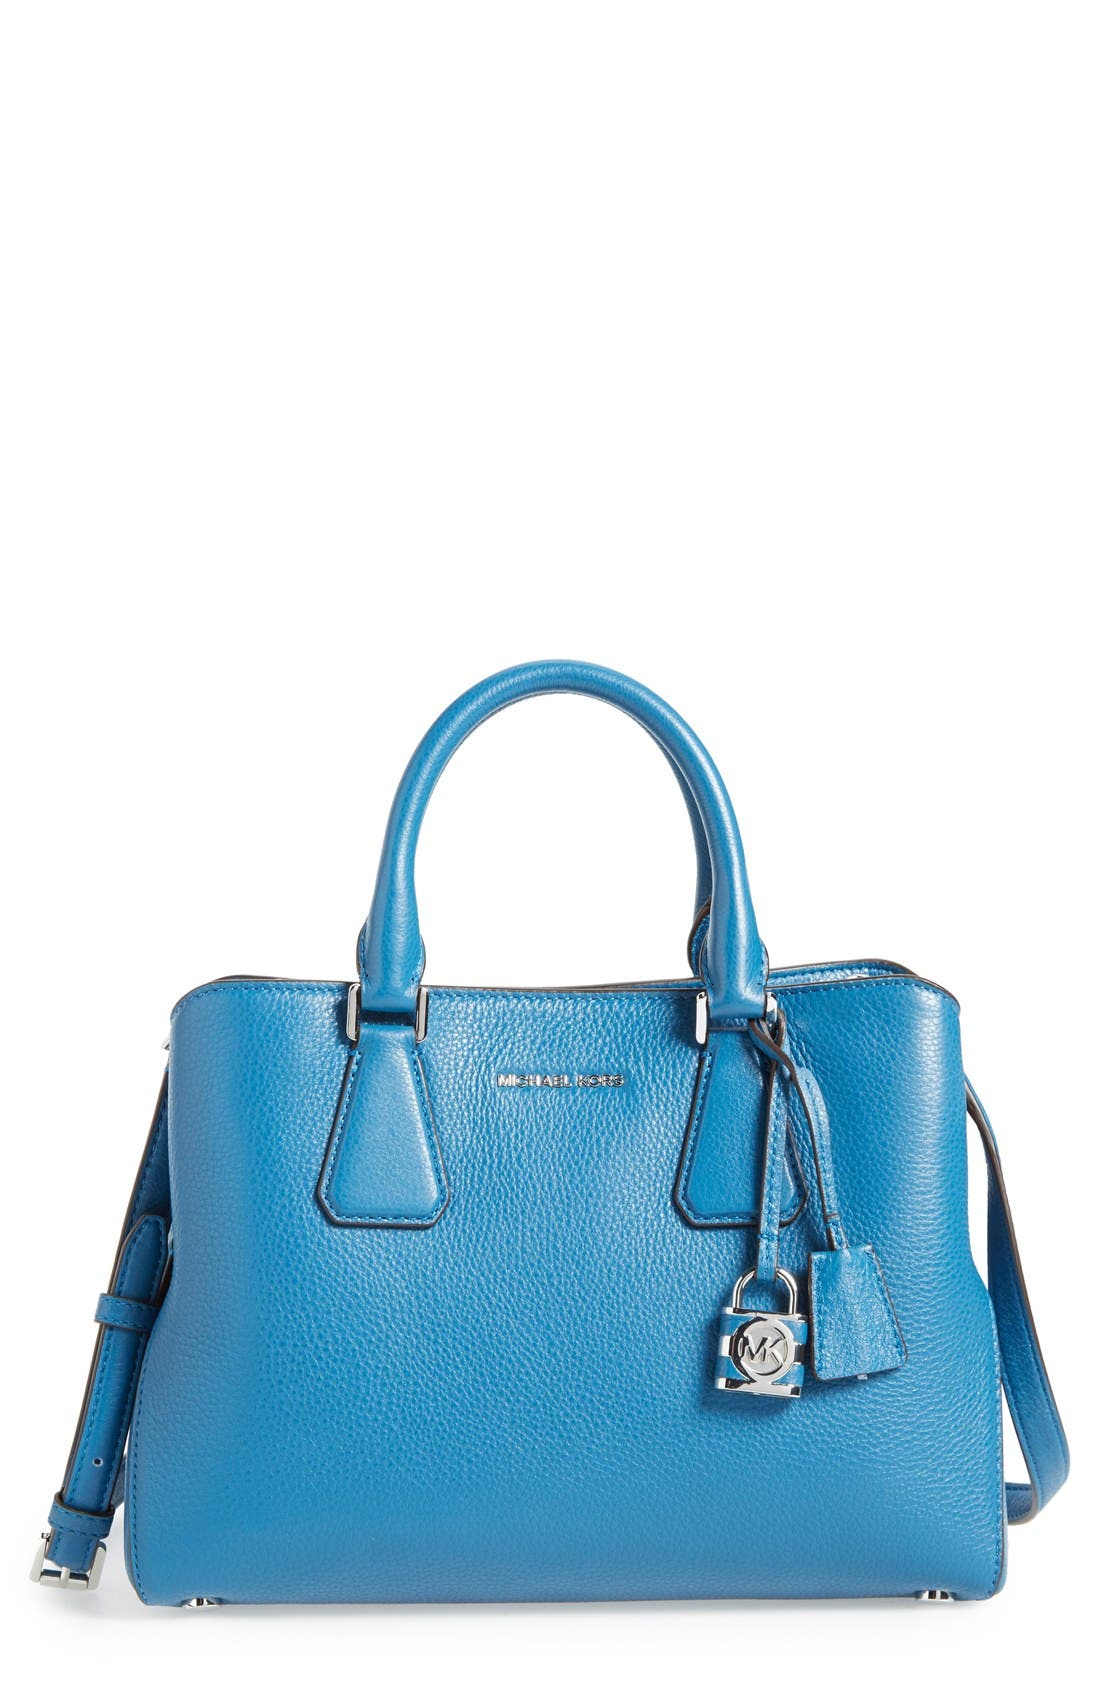 Alternate Image 1 Selected - MICHAEL Michael Kors 'Medium Camille' Satchel